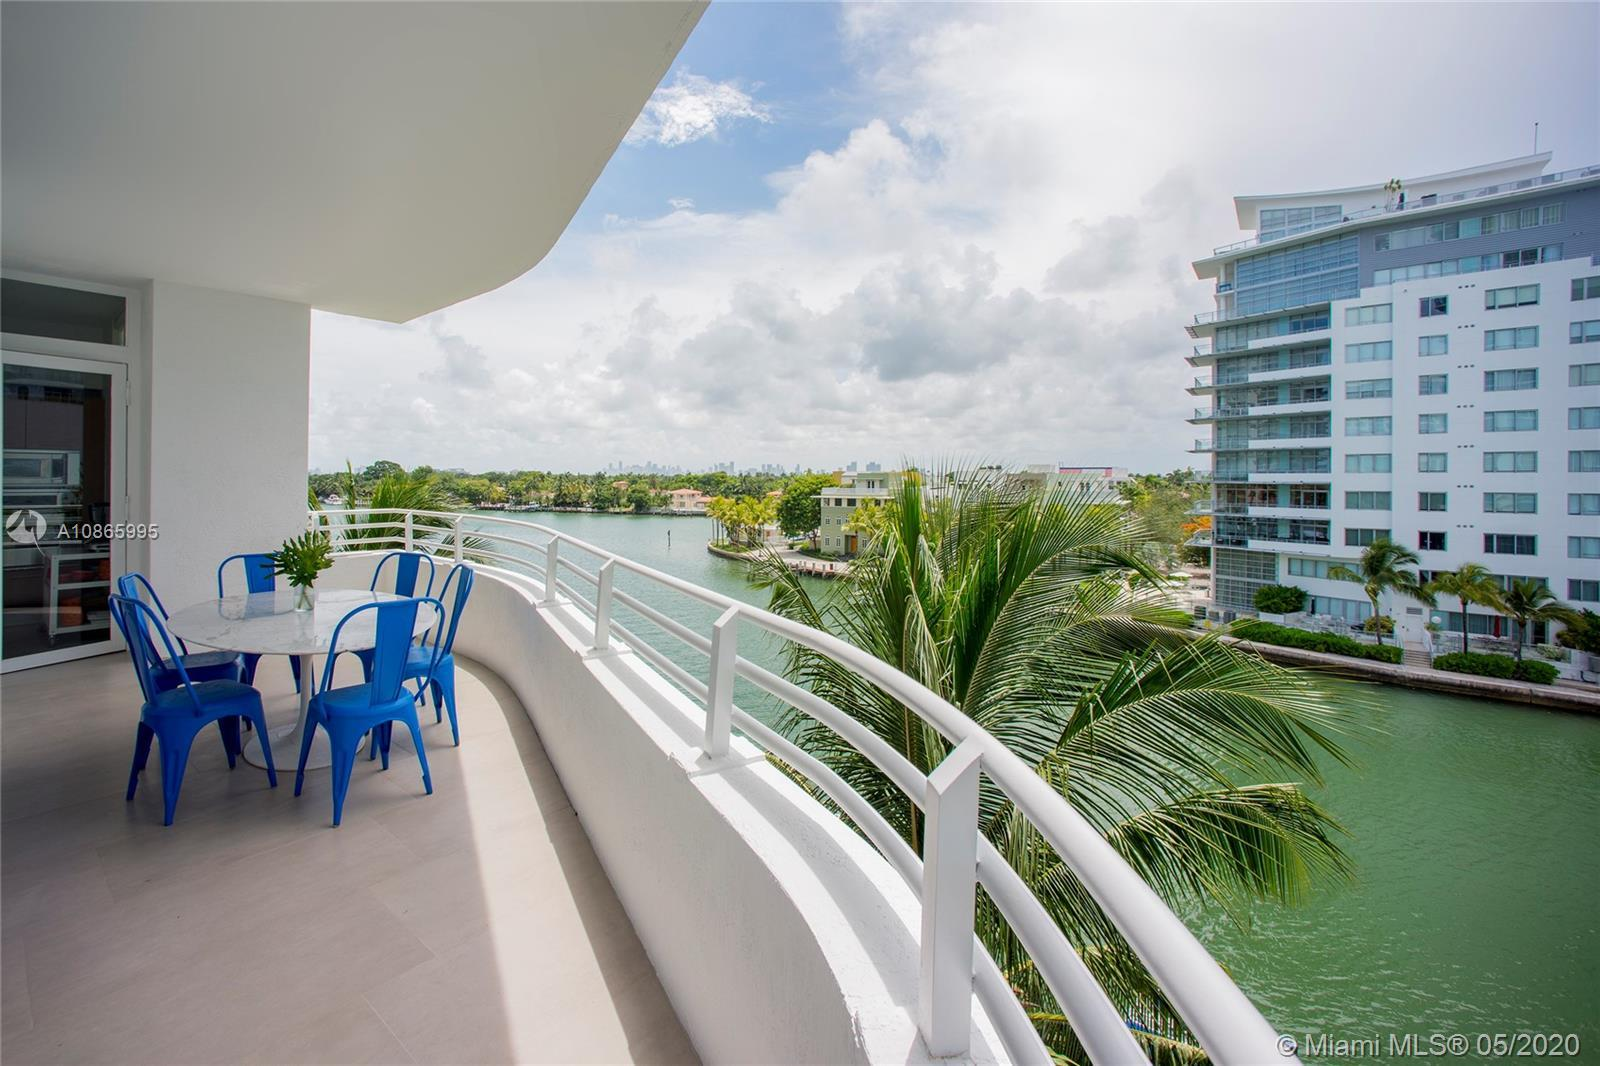 Laid-back luxury in prime waterfront location! Enjoy relaxed living and panoramic views in a large,